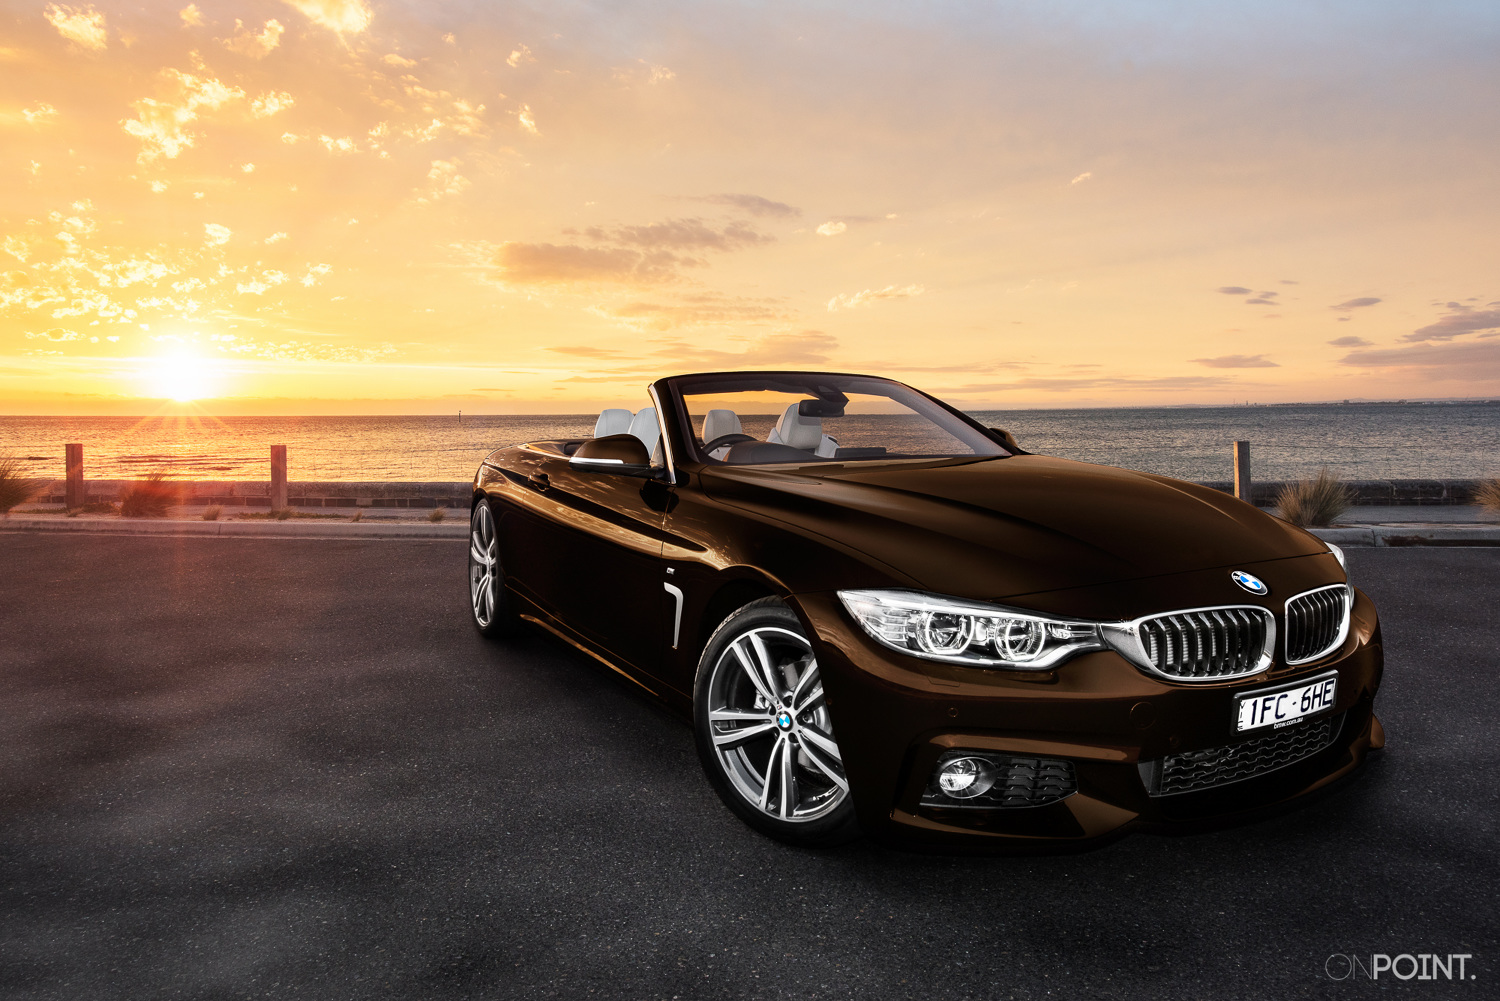 BMW Individual Collection I Convertible Onpoint - 428i bmw convertible